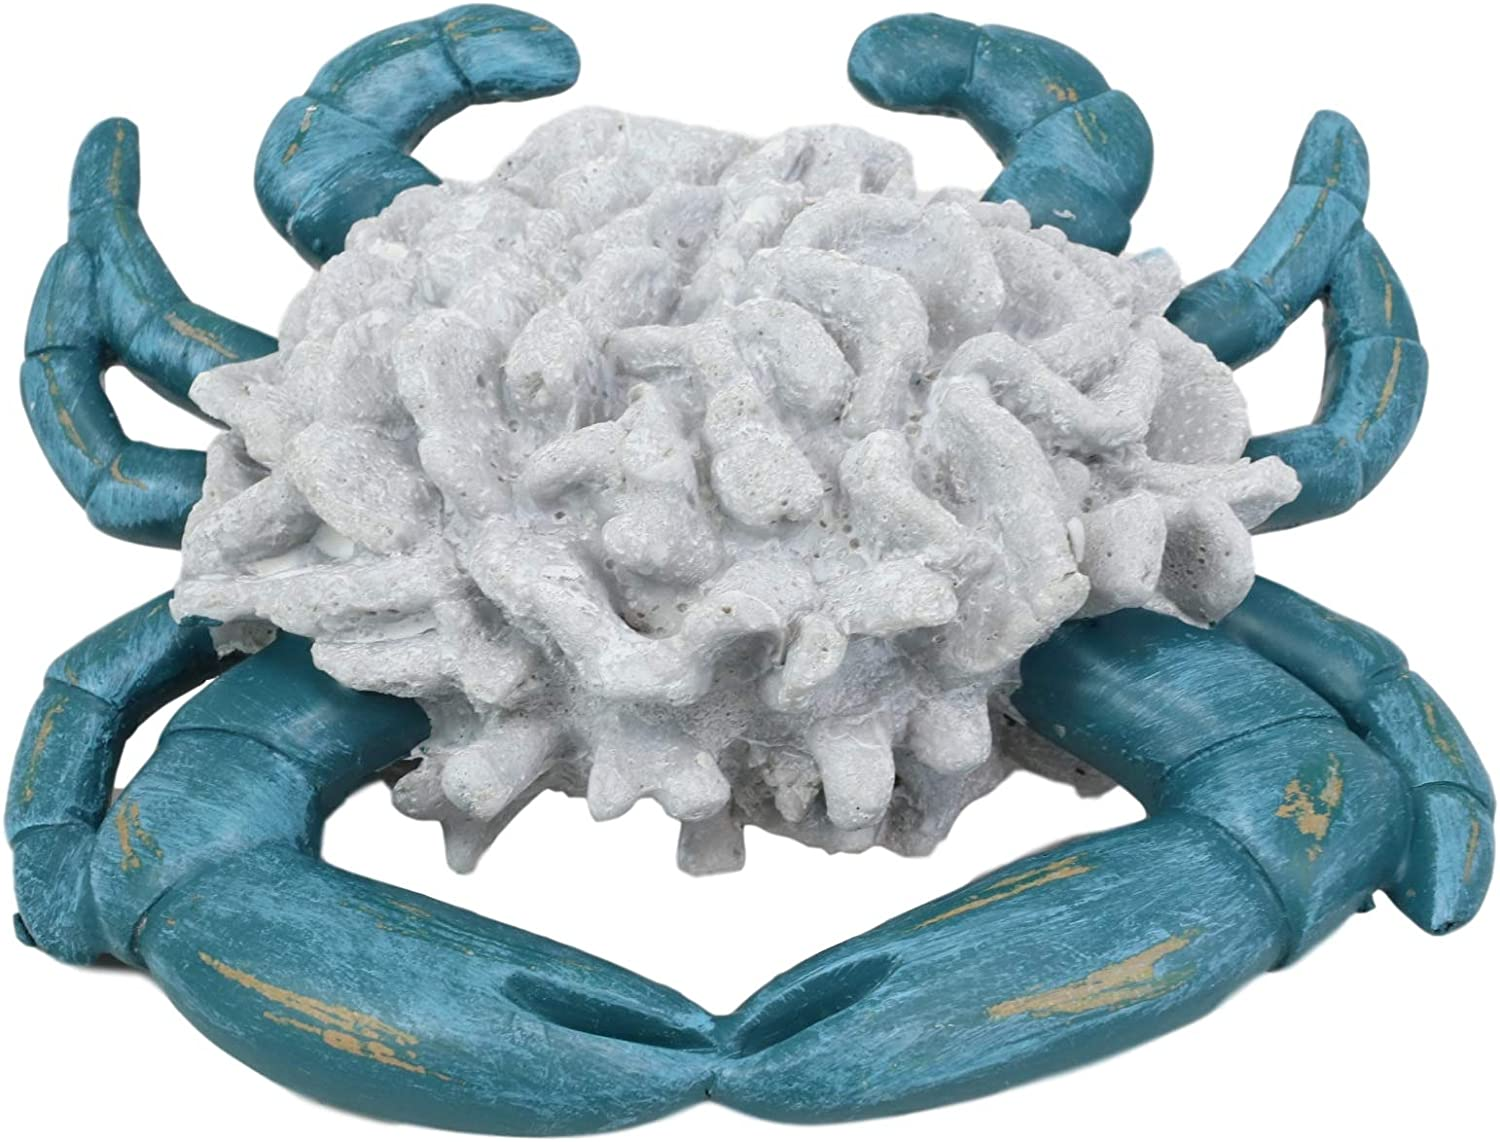 Silver Coloured Hand Painted Finish Crab Sea Resin Ornament Home Decor Figurine